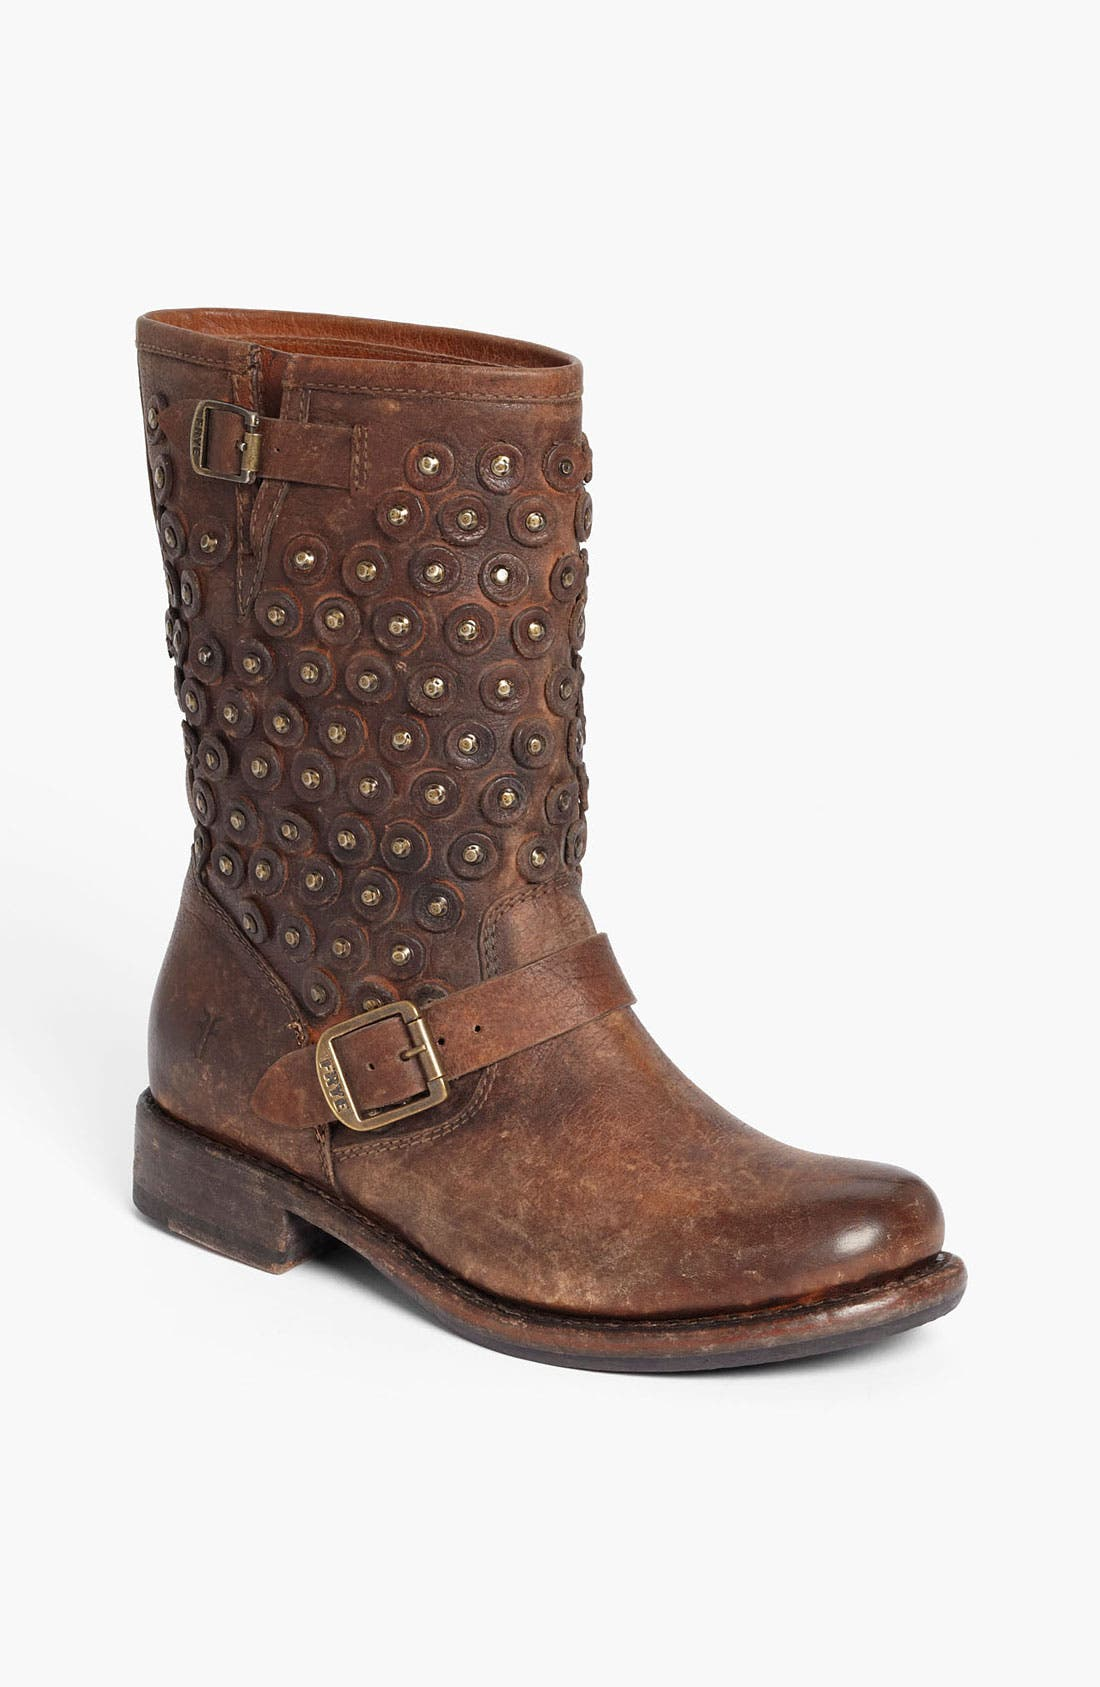 Alternate Image 1 Selected - Frye 'Jenna Disc' Short Boot